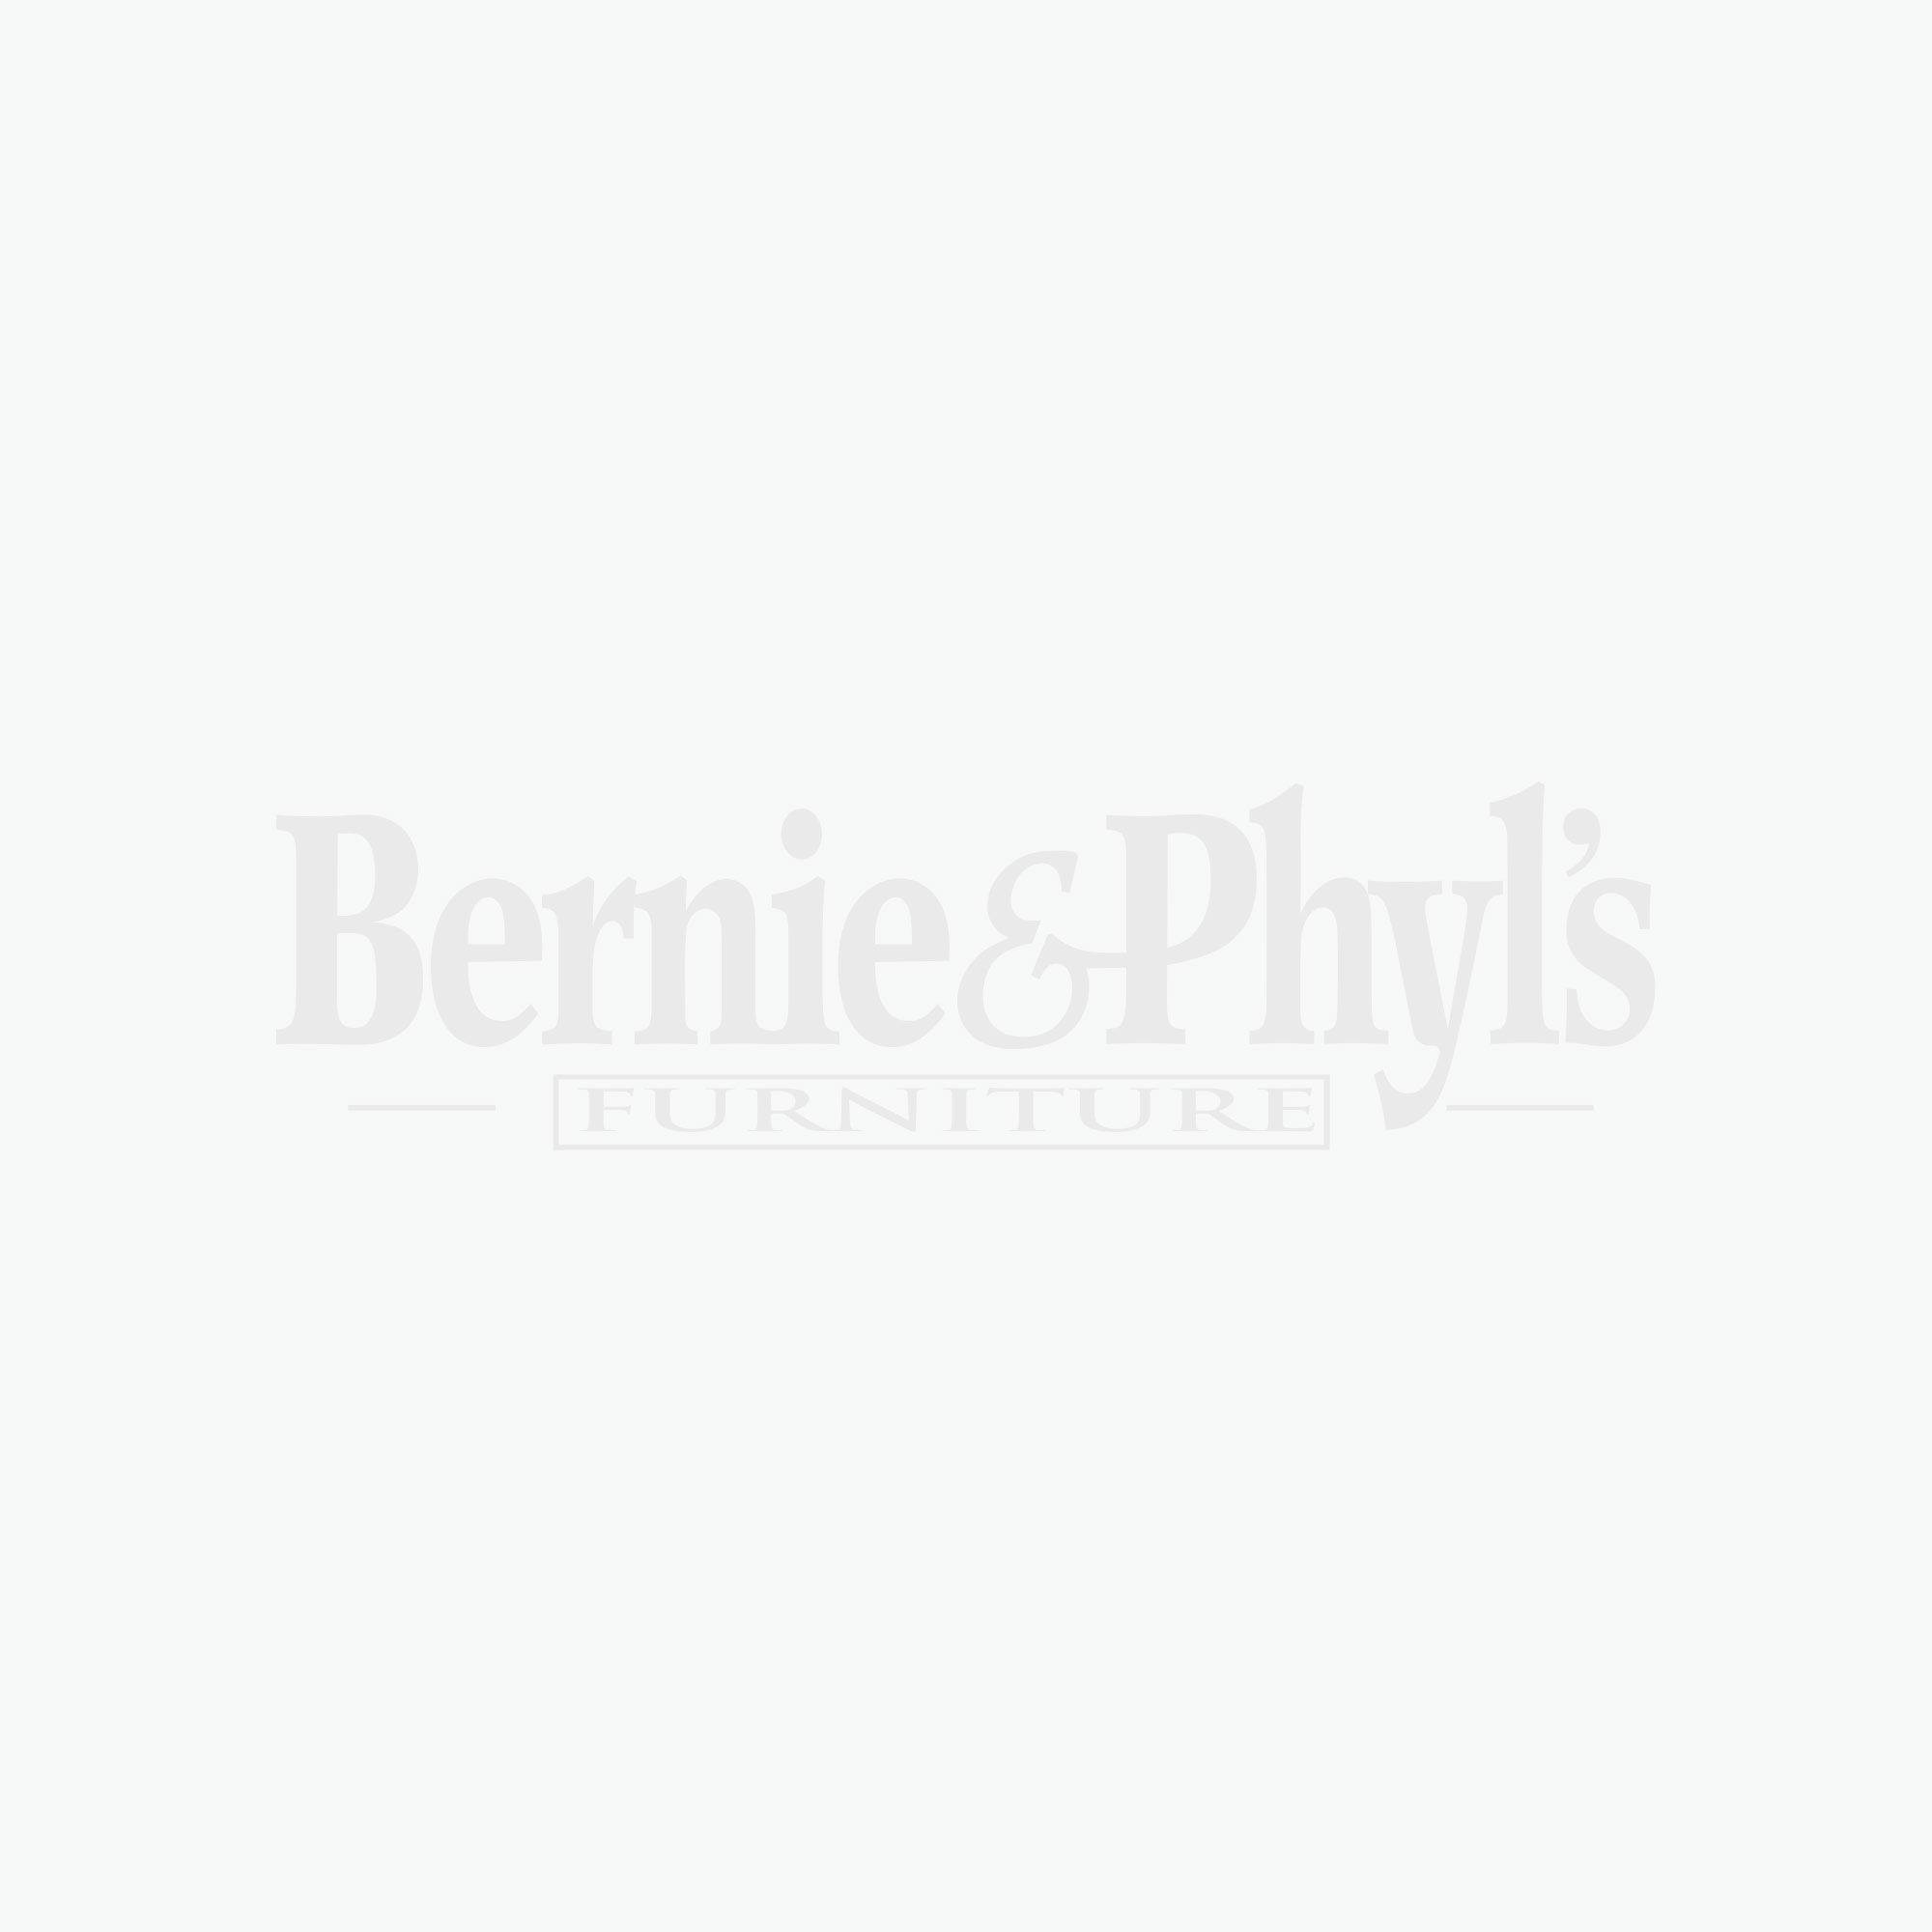 Armstrong Bedroom Dresser